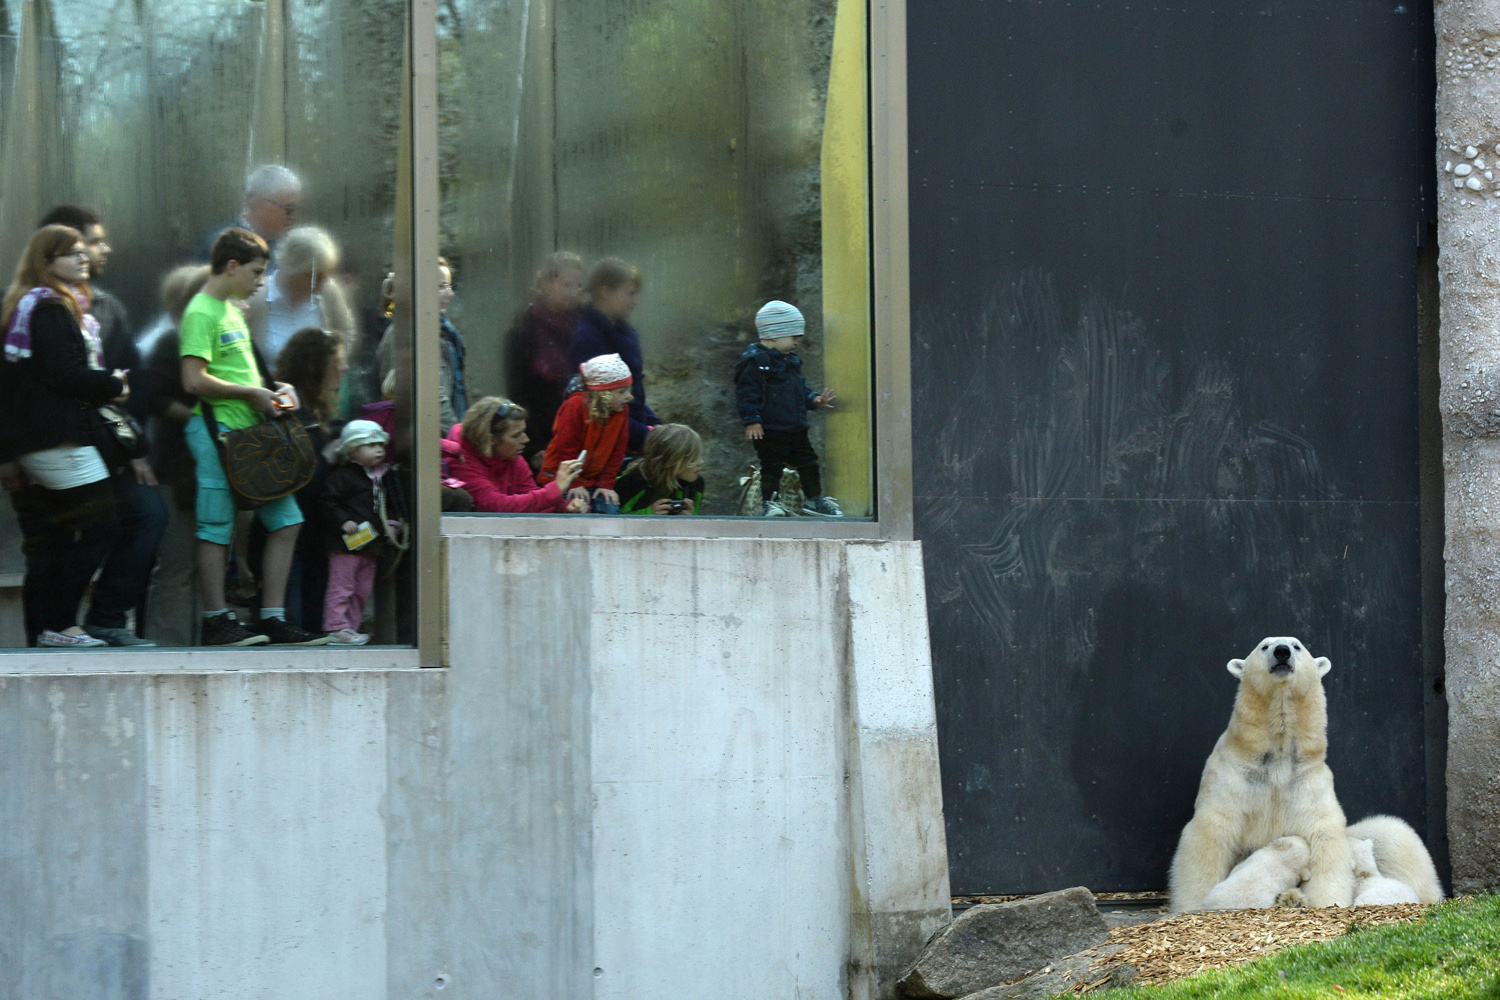 Apr. 7, 2014. Visitors watch the16-weeks-old polar bear twins Nobby and Nola cuddle with their mother Giovanna in their enclosure in the zoo in Munich Hellabrunn, southern Germany.